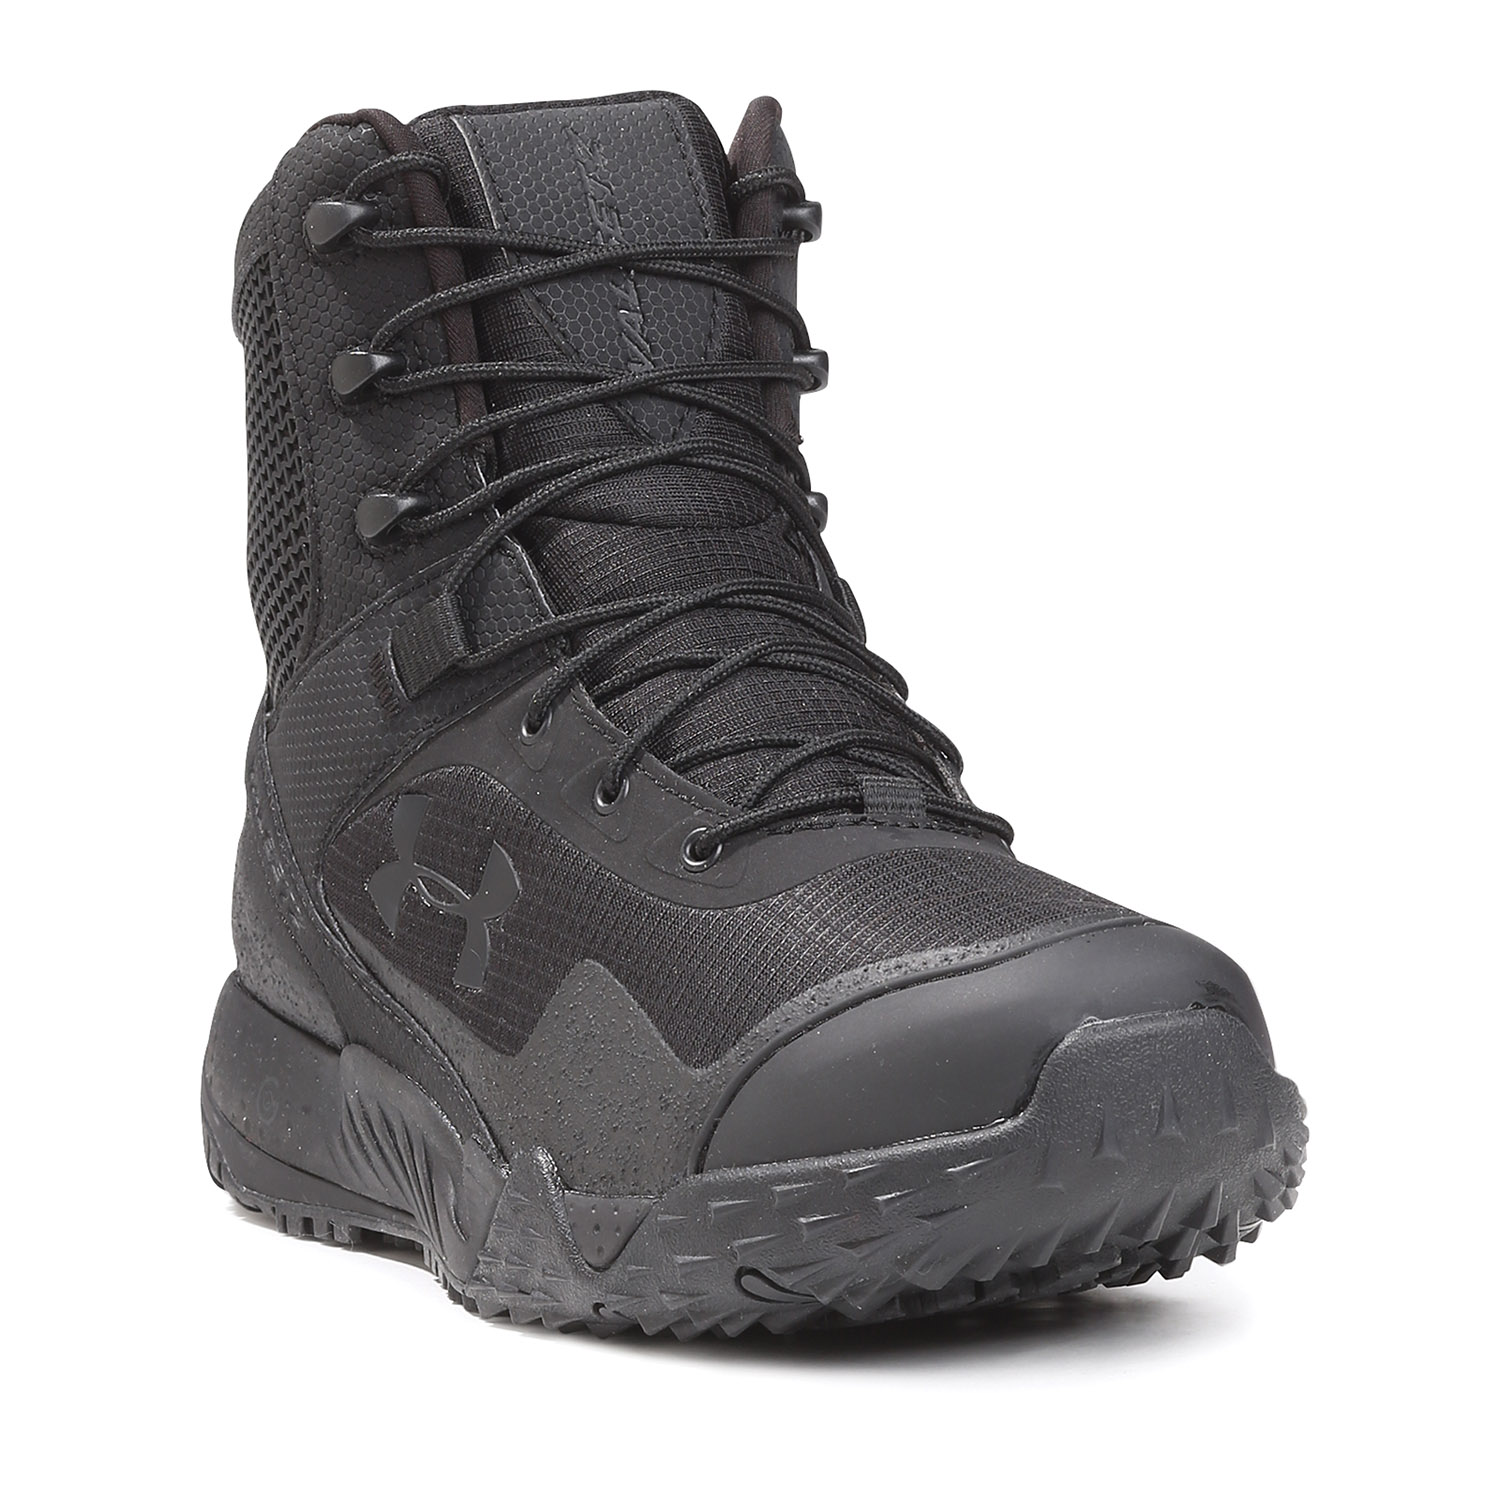 Valsetz RTS Tactical Boot - Black